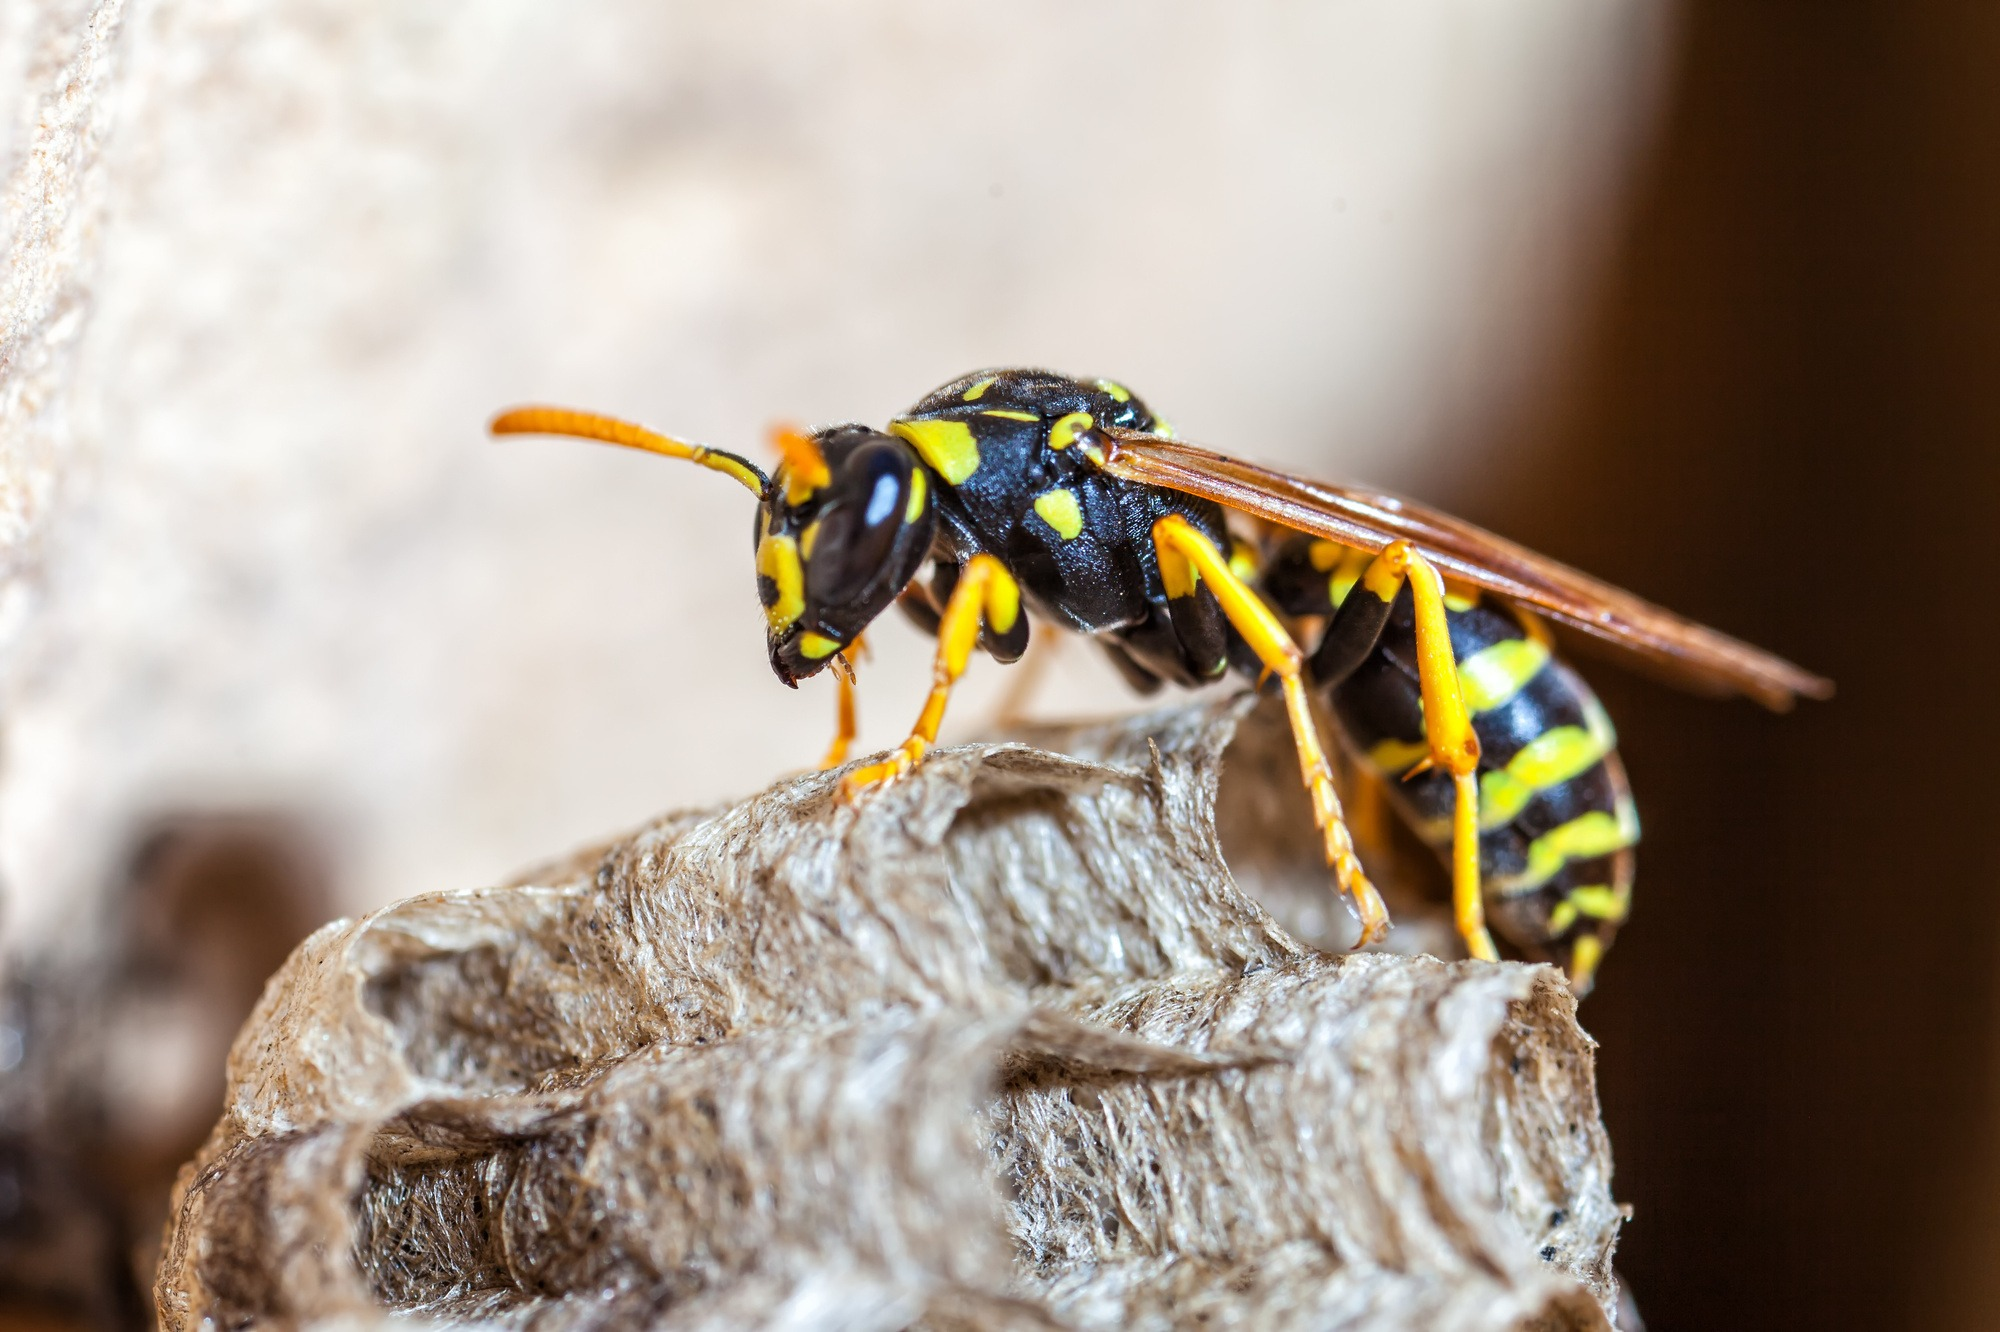 wasp removal process